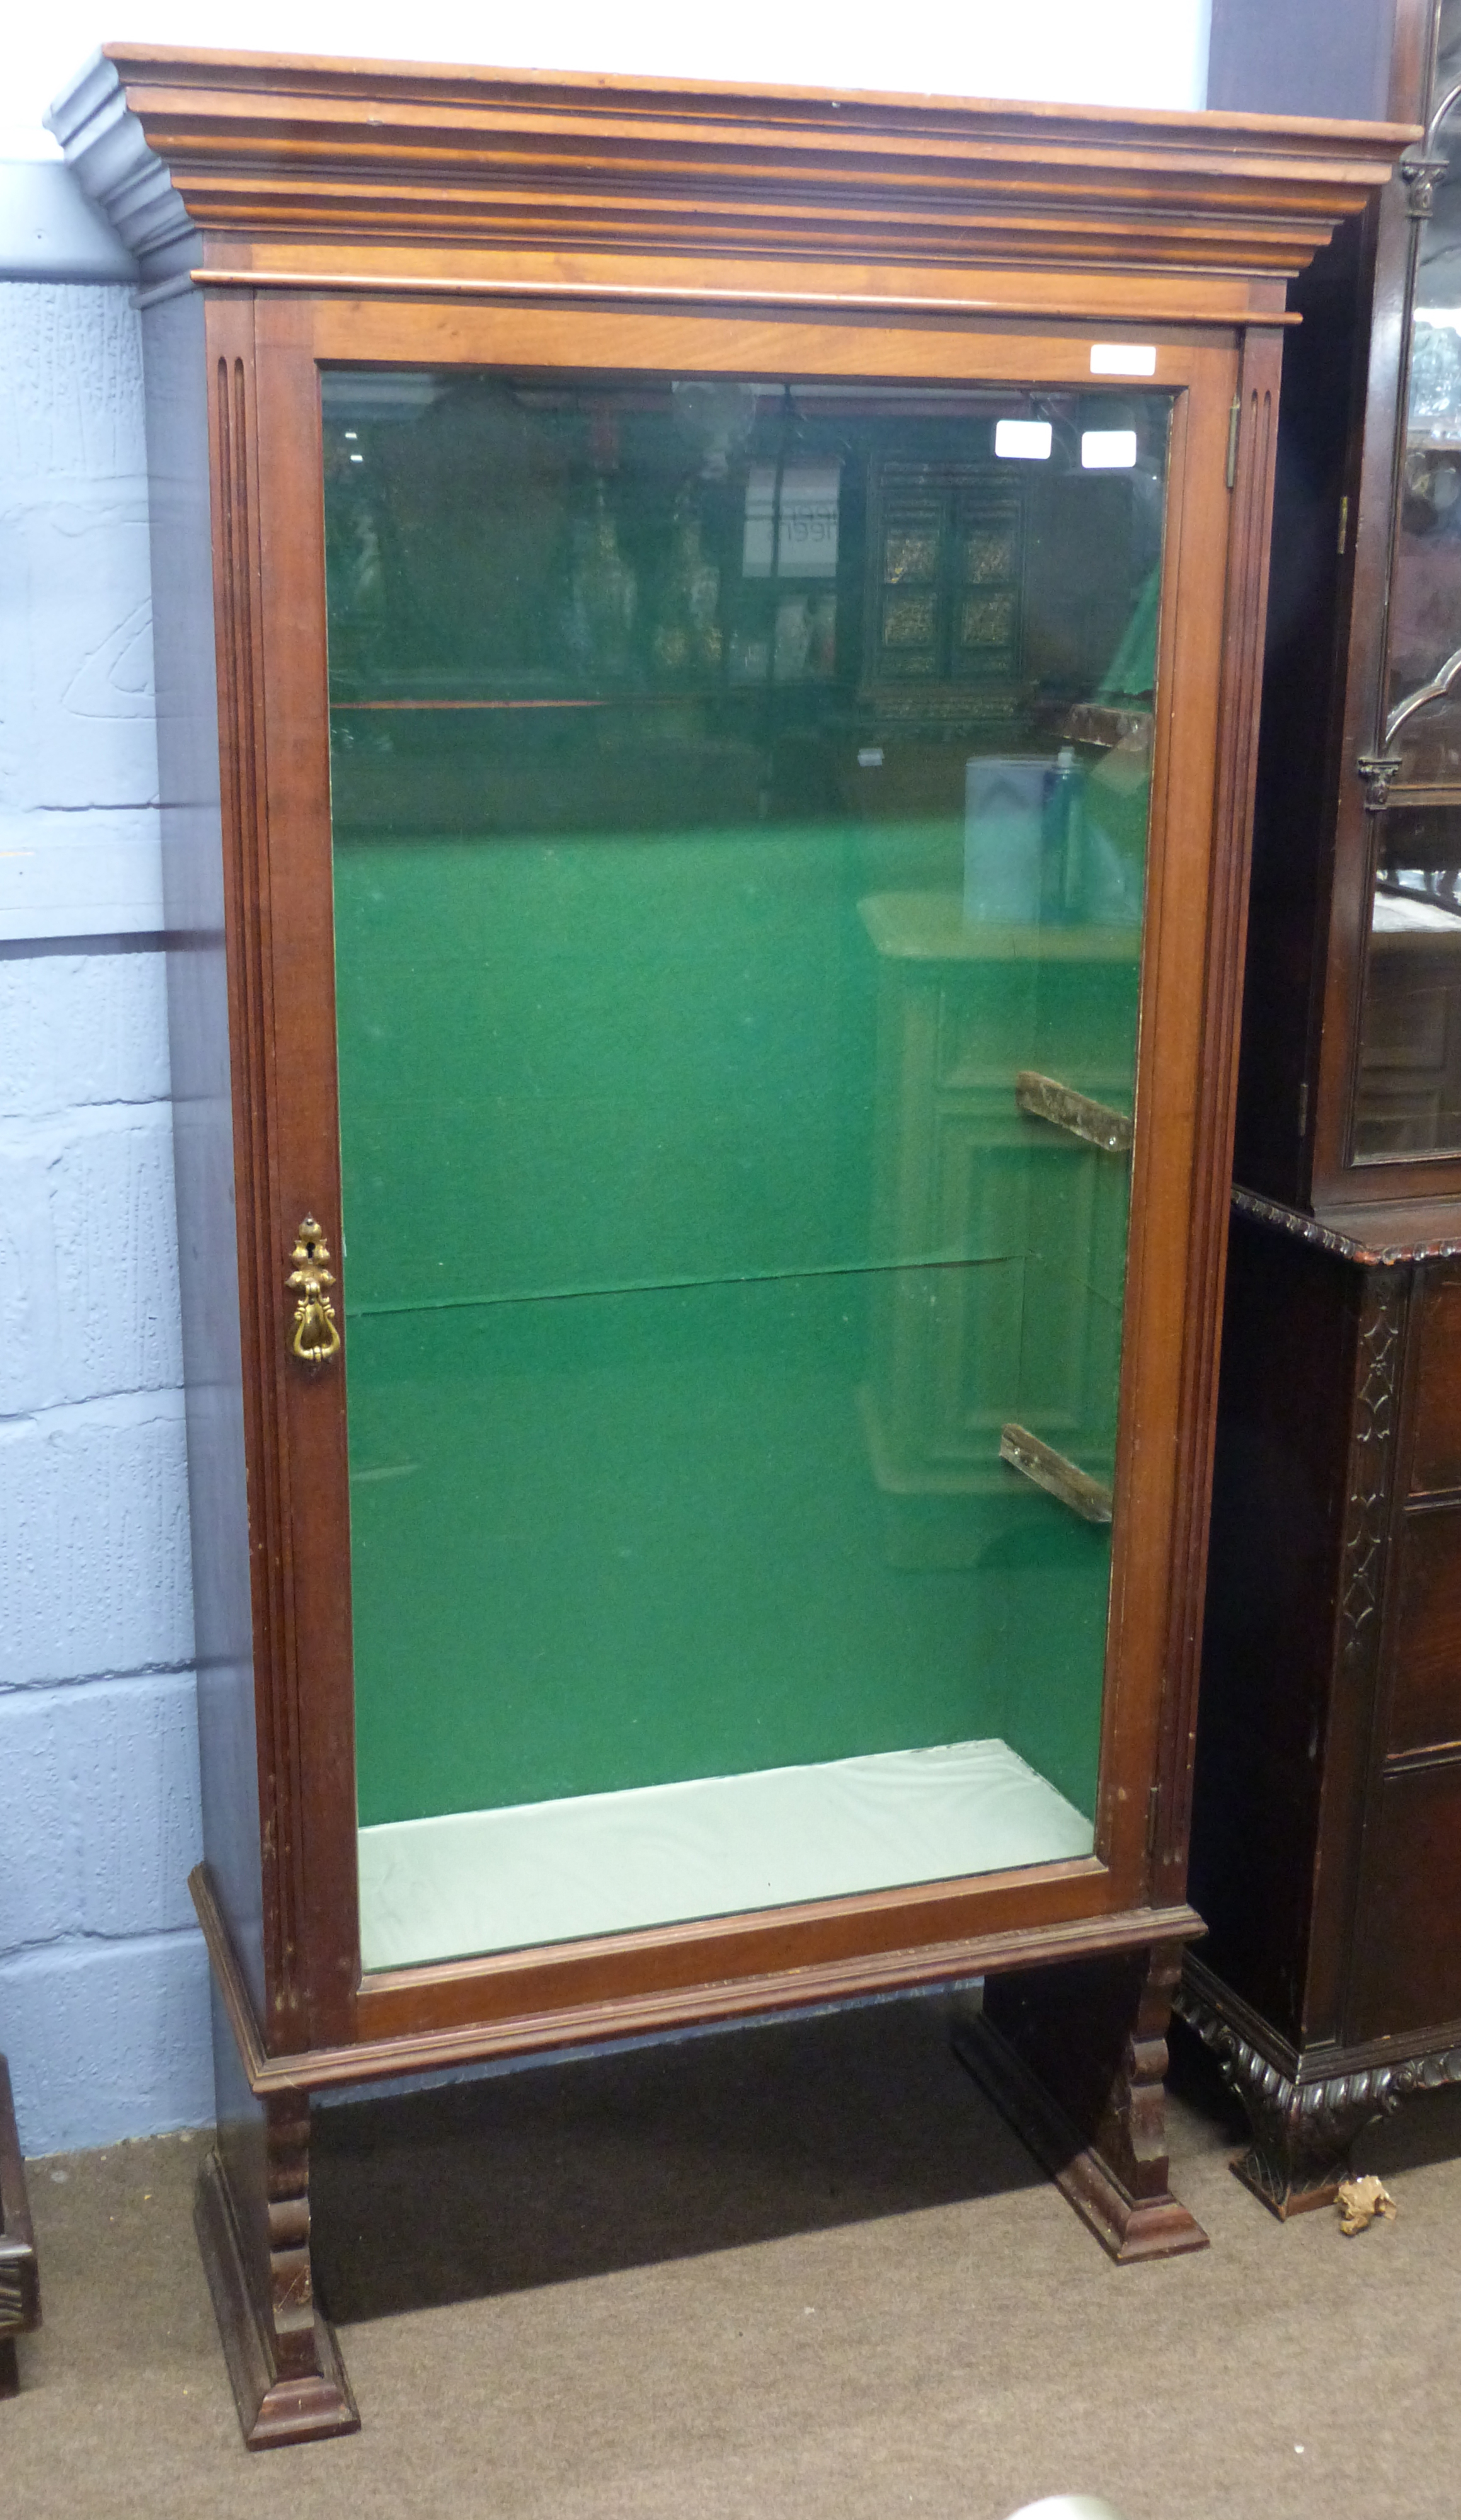 Early 20th century mahogany glazed display cabinet, width approx 83cm